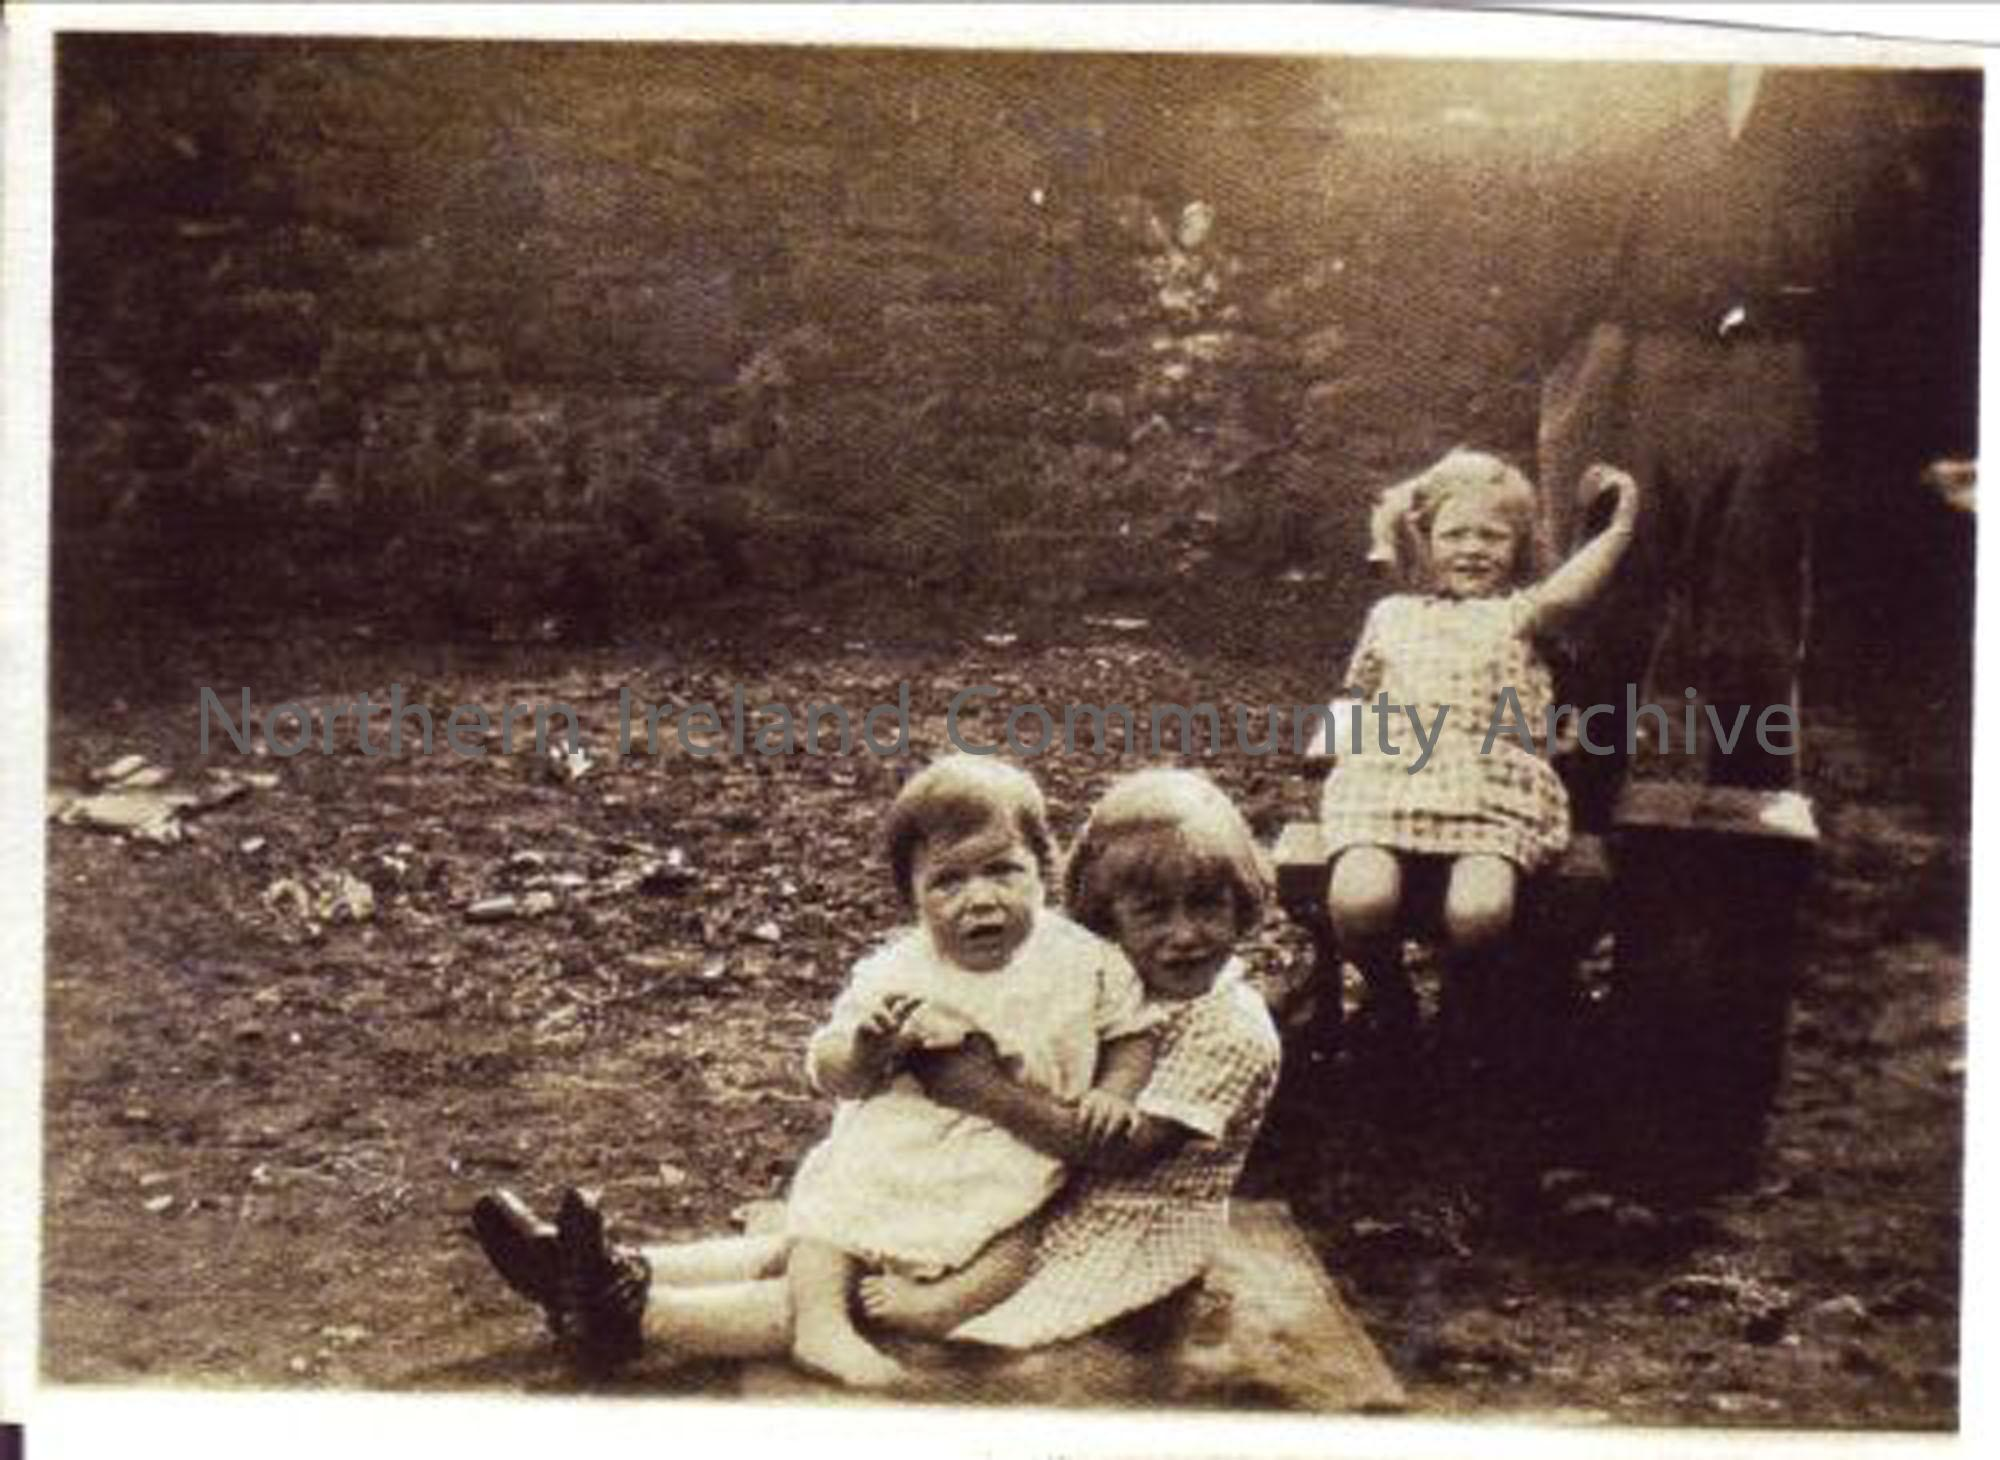 Annie and Jean White, with Molly Boyd in the garden at the White's house, which was a Nissan hut on the Taughey Road, Balnamore, c1930. (5372)